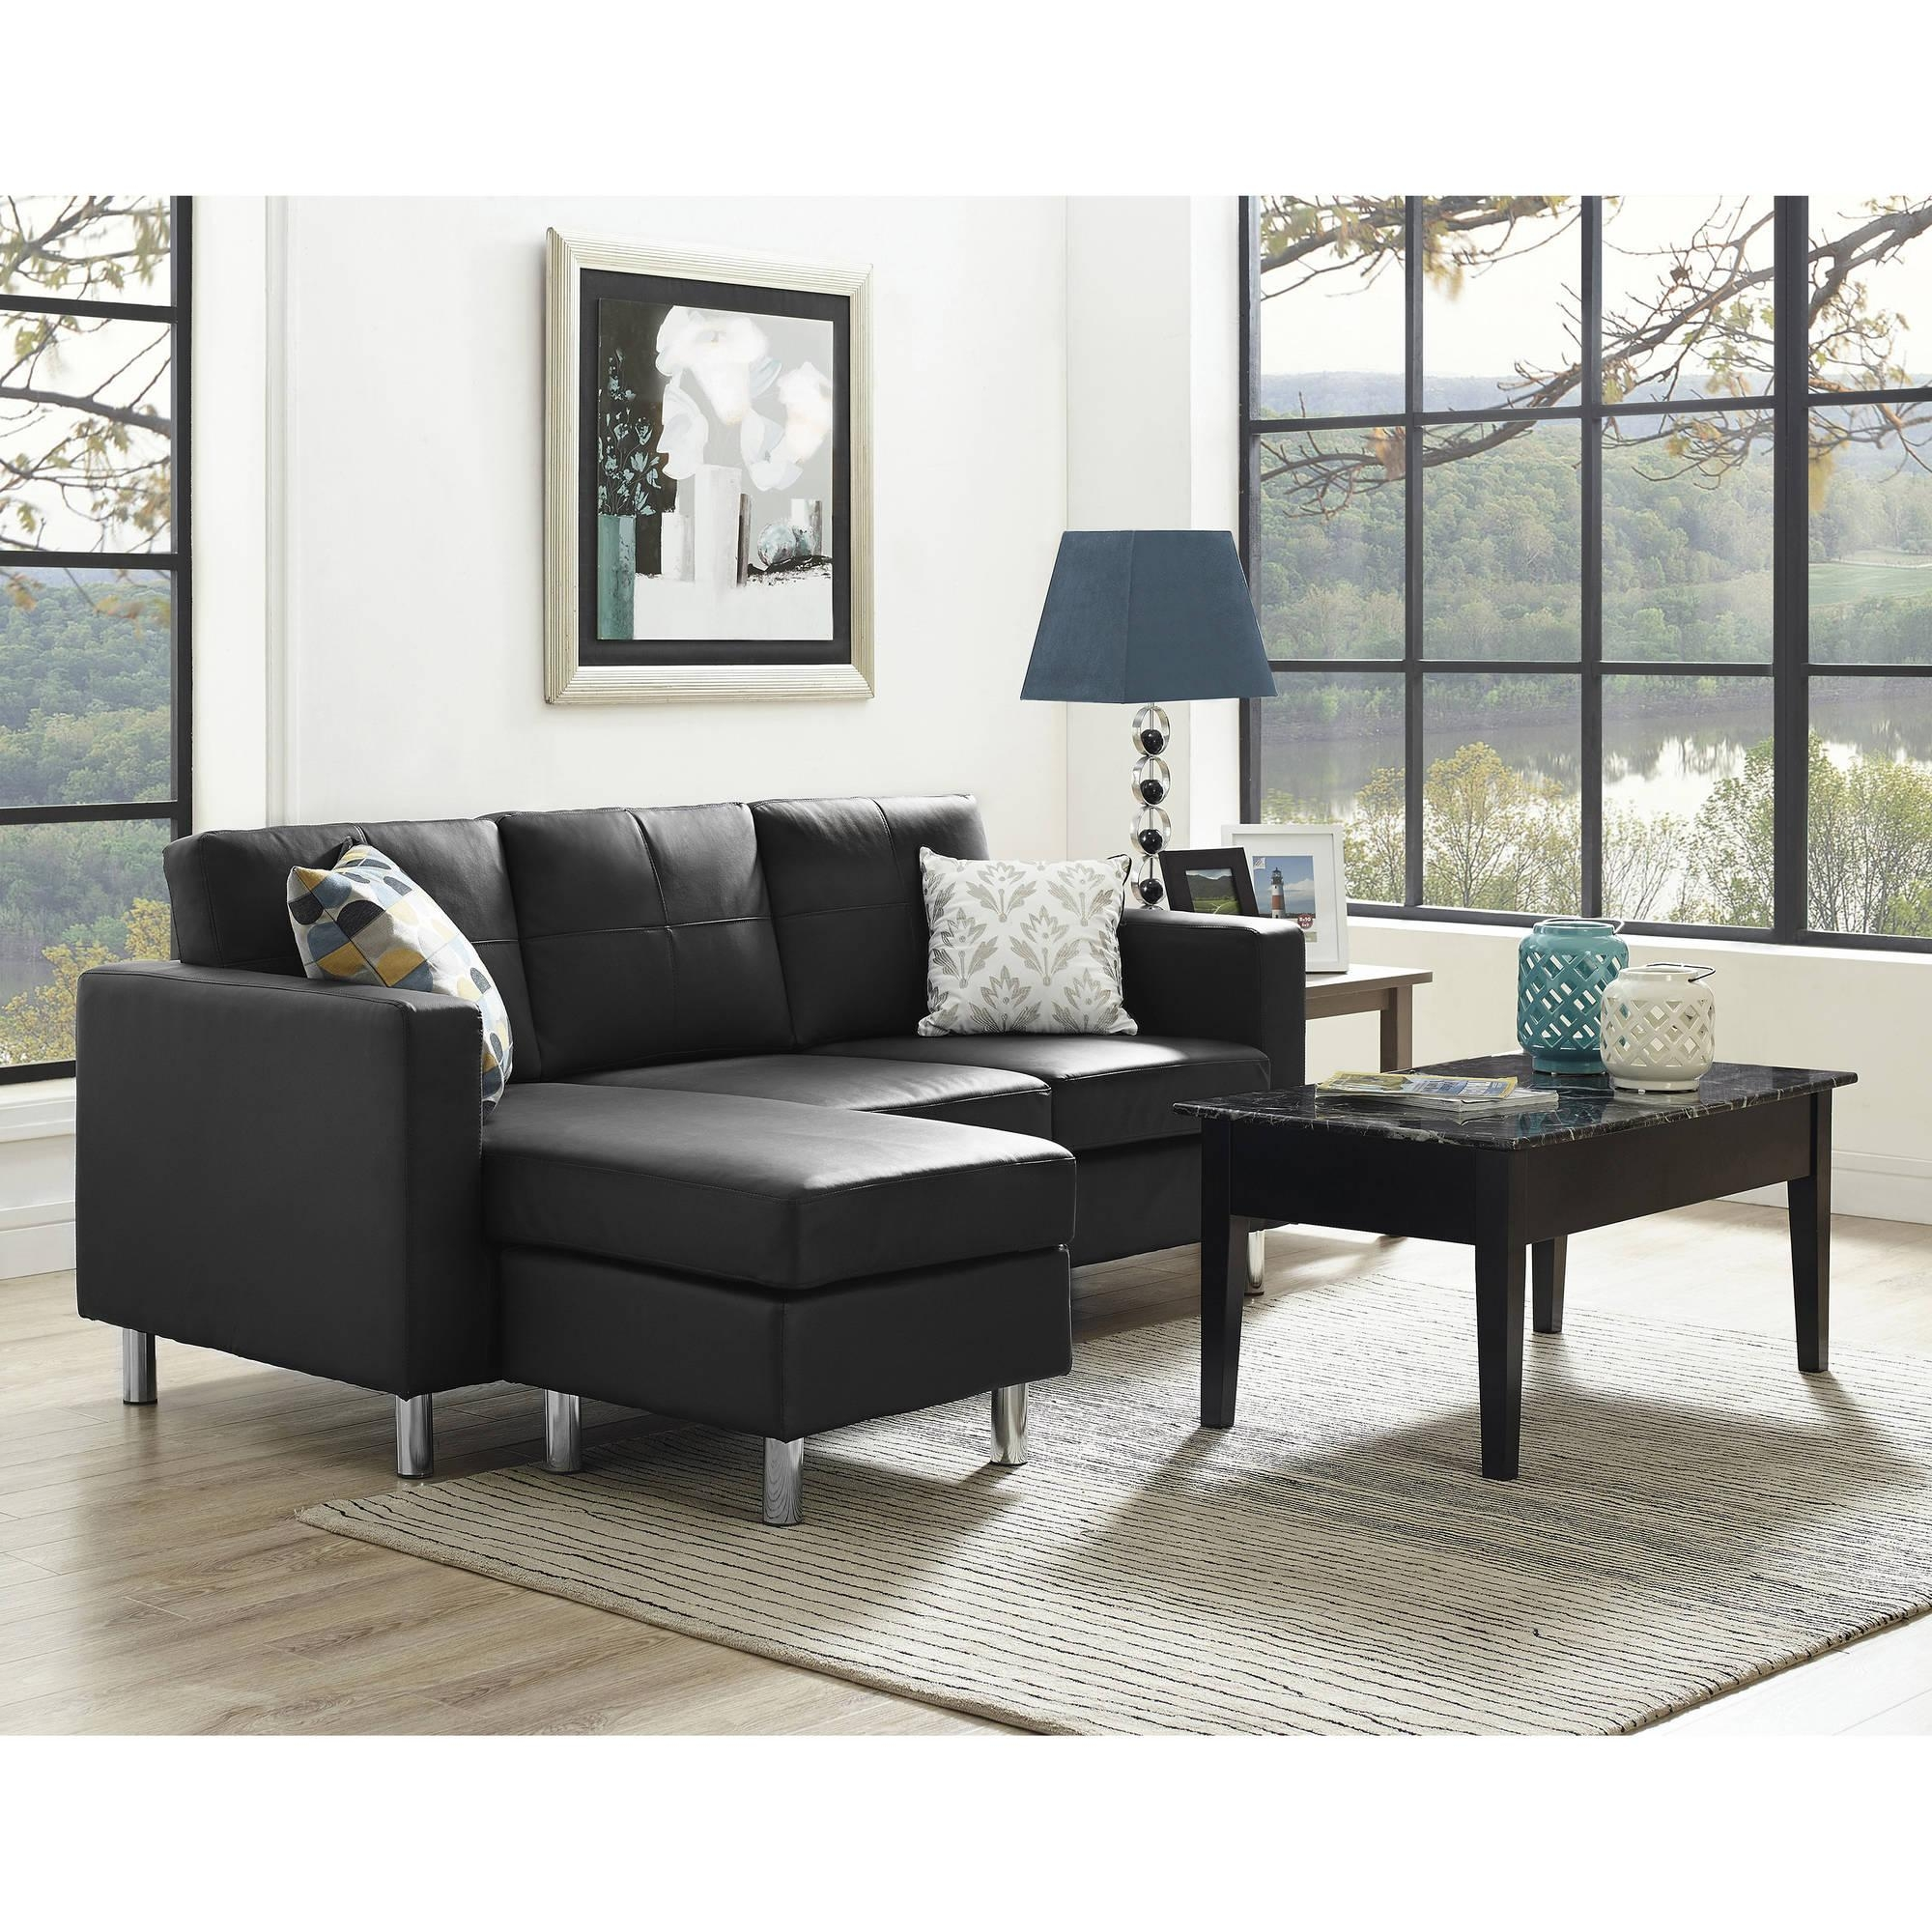 Dorel Living Small Spaces Configurable Sectional Sofa, Multiple With Regard To Sectionals For Apartments (View 10 of 20)